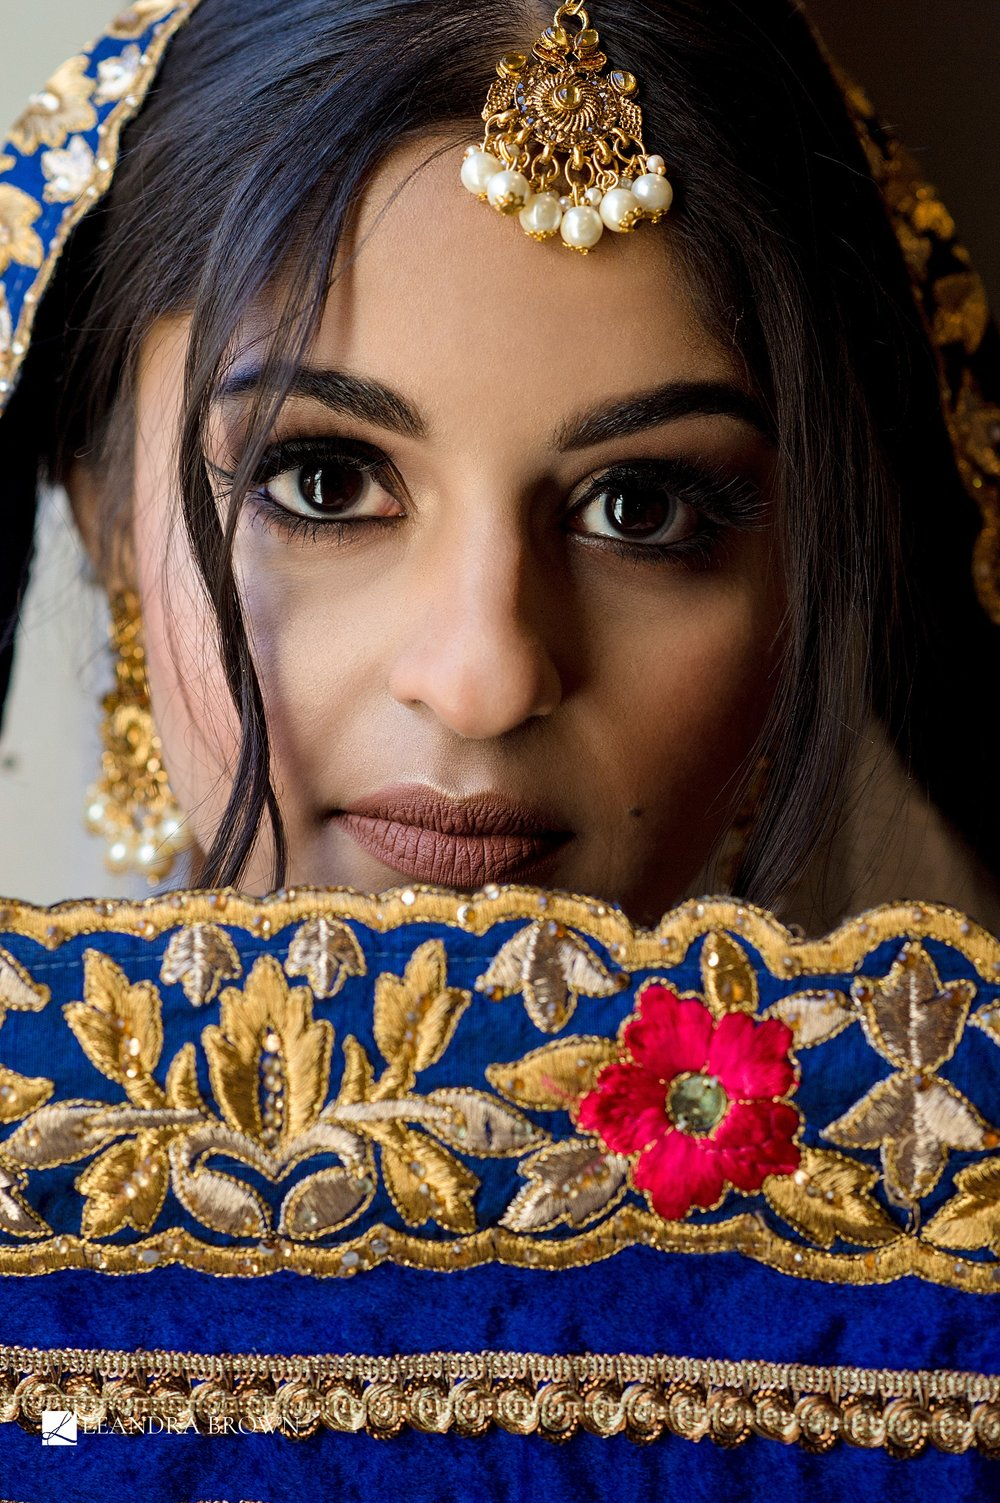 South Asian Wedding Photography.LeandraBrownPhotography_0040.jpg